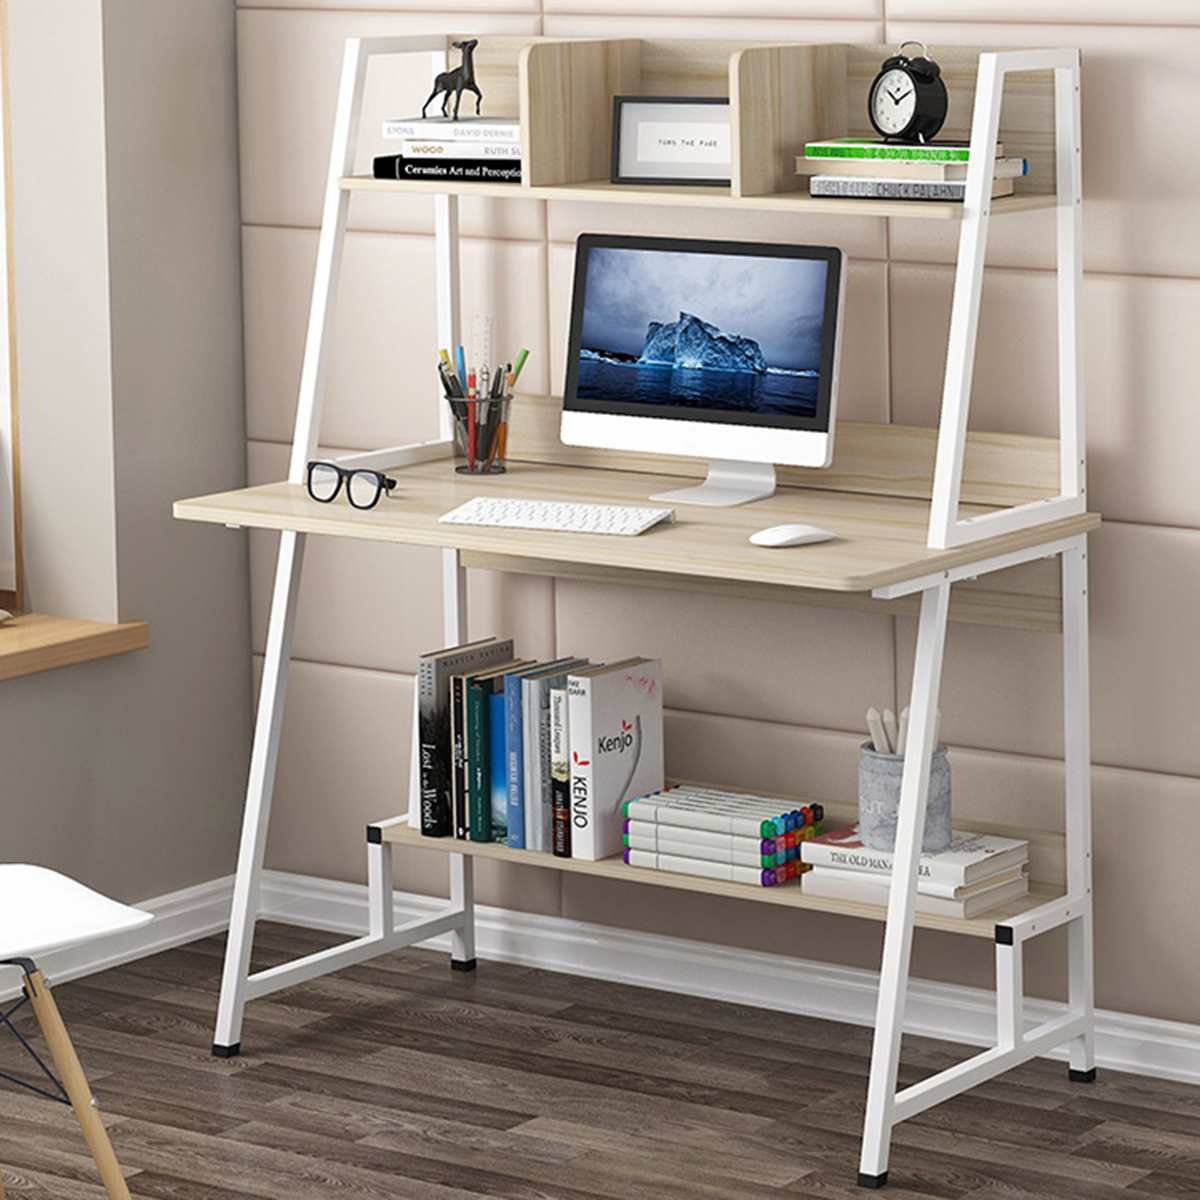 Computer Desk Home Office PC Laptop Table With 4 Shelves Kid Student Study Shelf